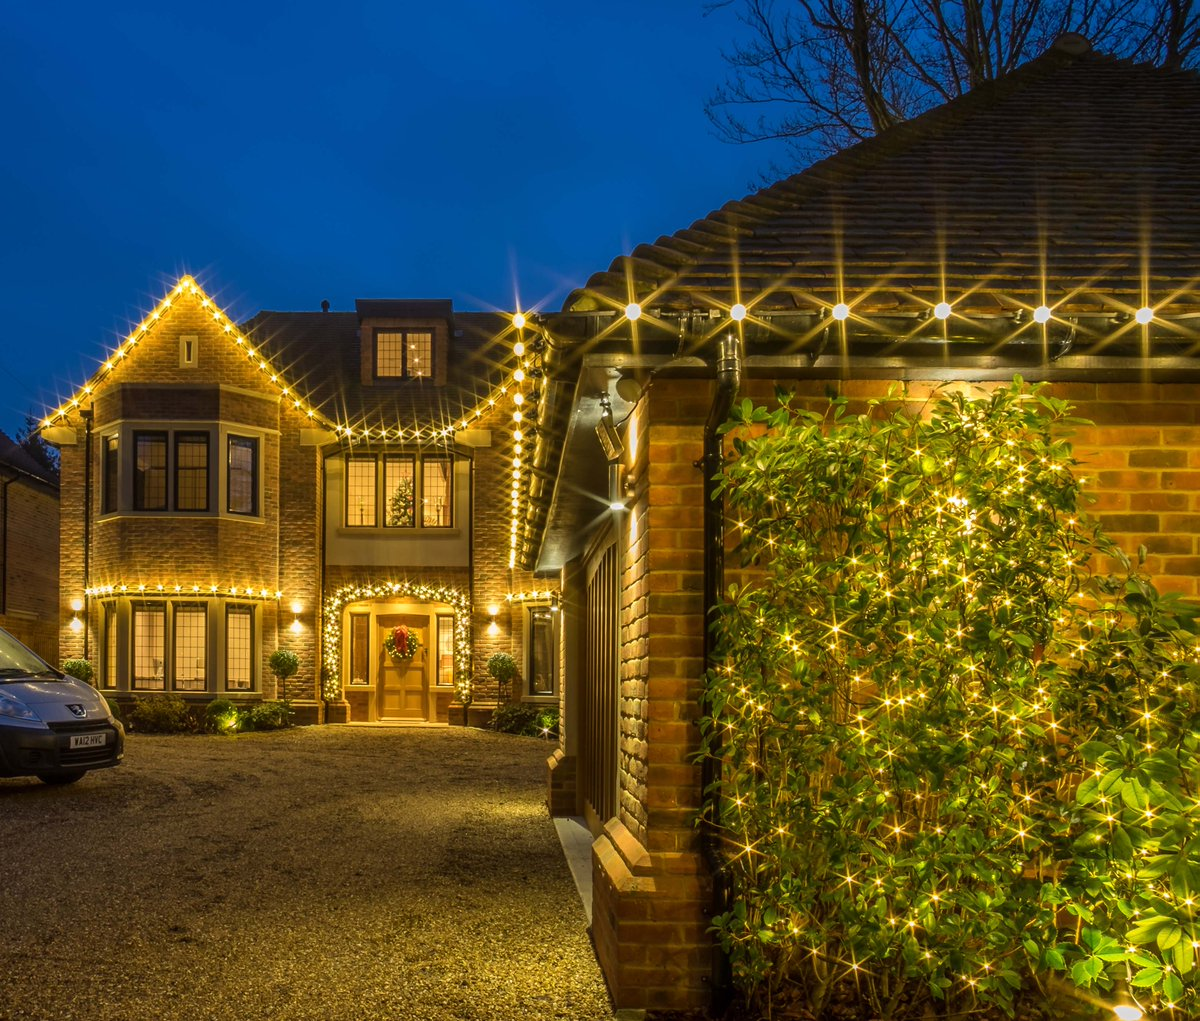 Dazzle your family, guests and neighbours with our wondrous #Christmas #decorations ✨ 🤩  If you would like to take the hassle out of making your #home looking outstanding.   ✉️ richard@thechristmasdecorators.com 📞 01172 050 145  #makechristmasmemorable #makememories… https://t.co/heL1N9q7nv